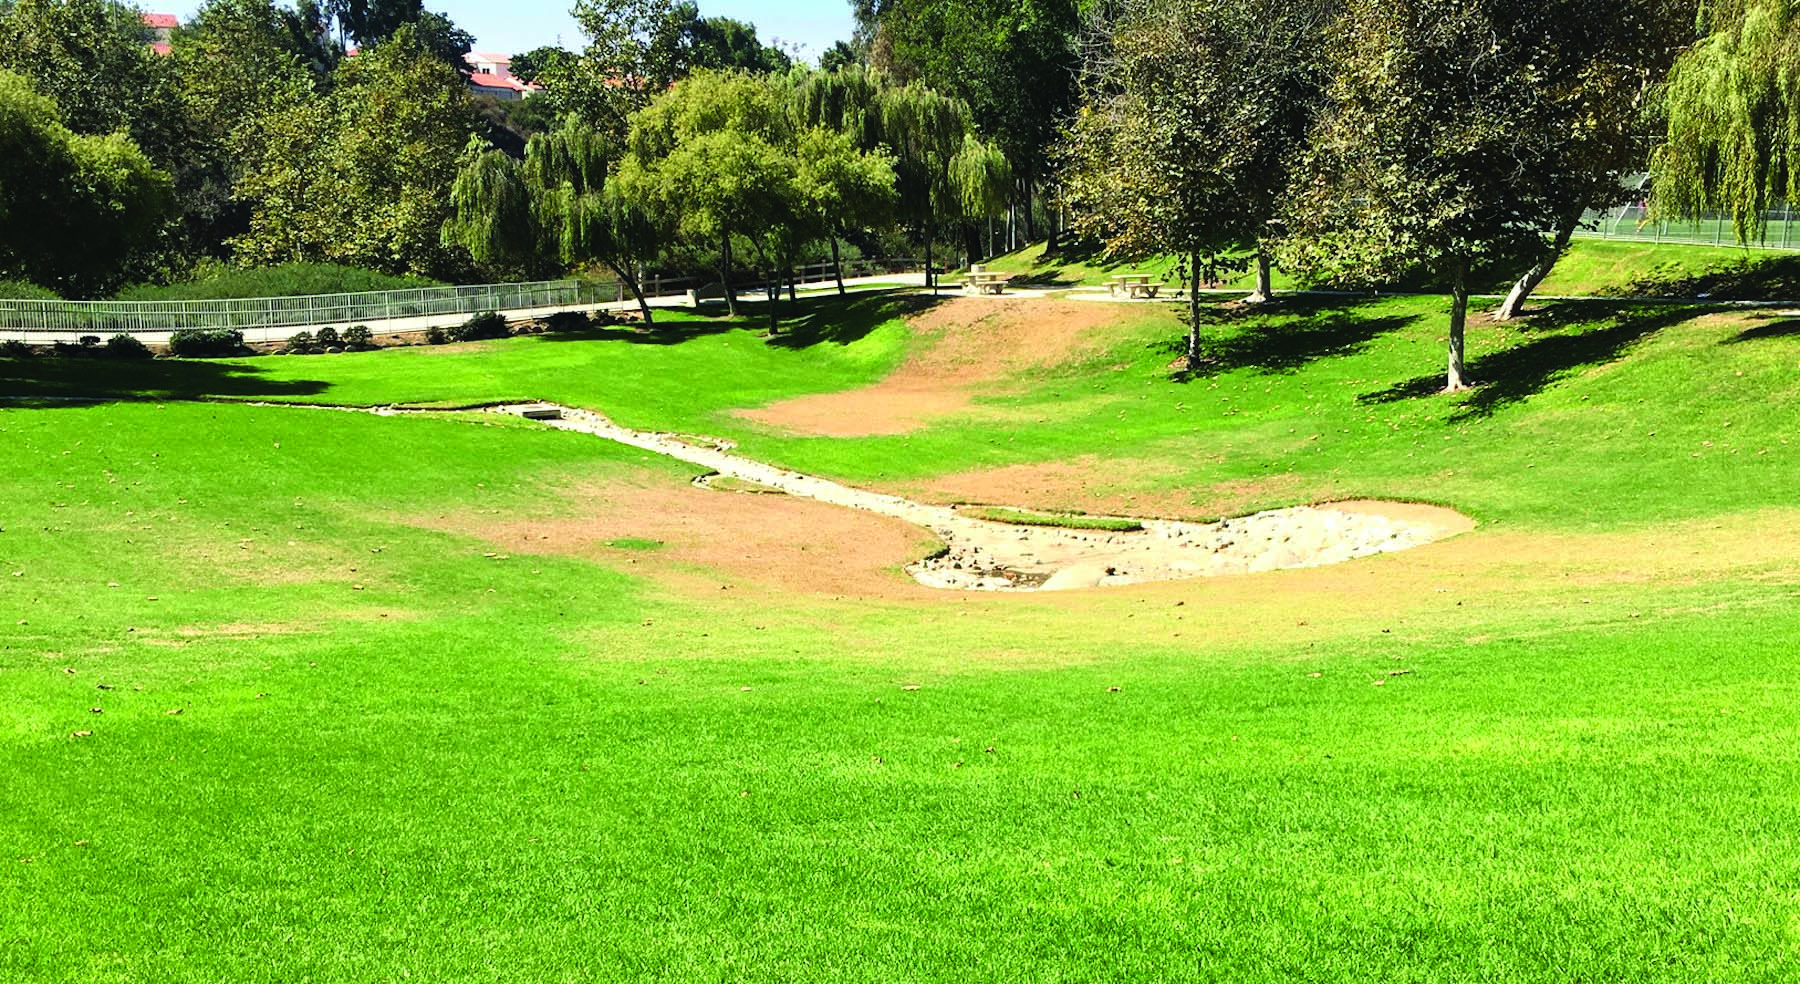 Residents, city work to relocate Poinsettia dog park